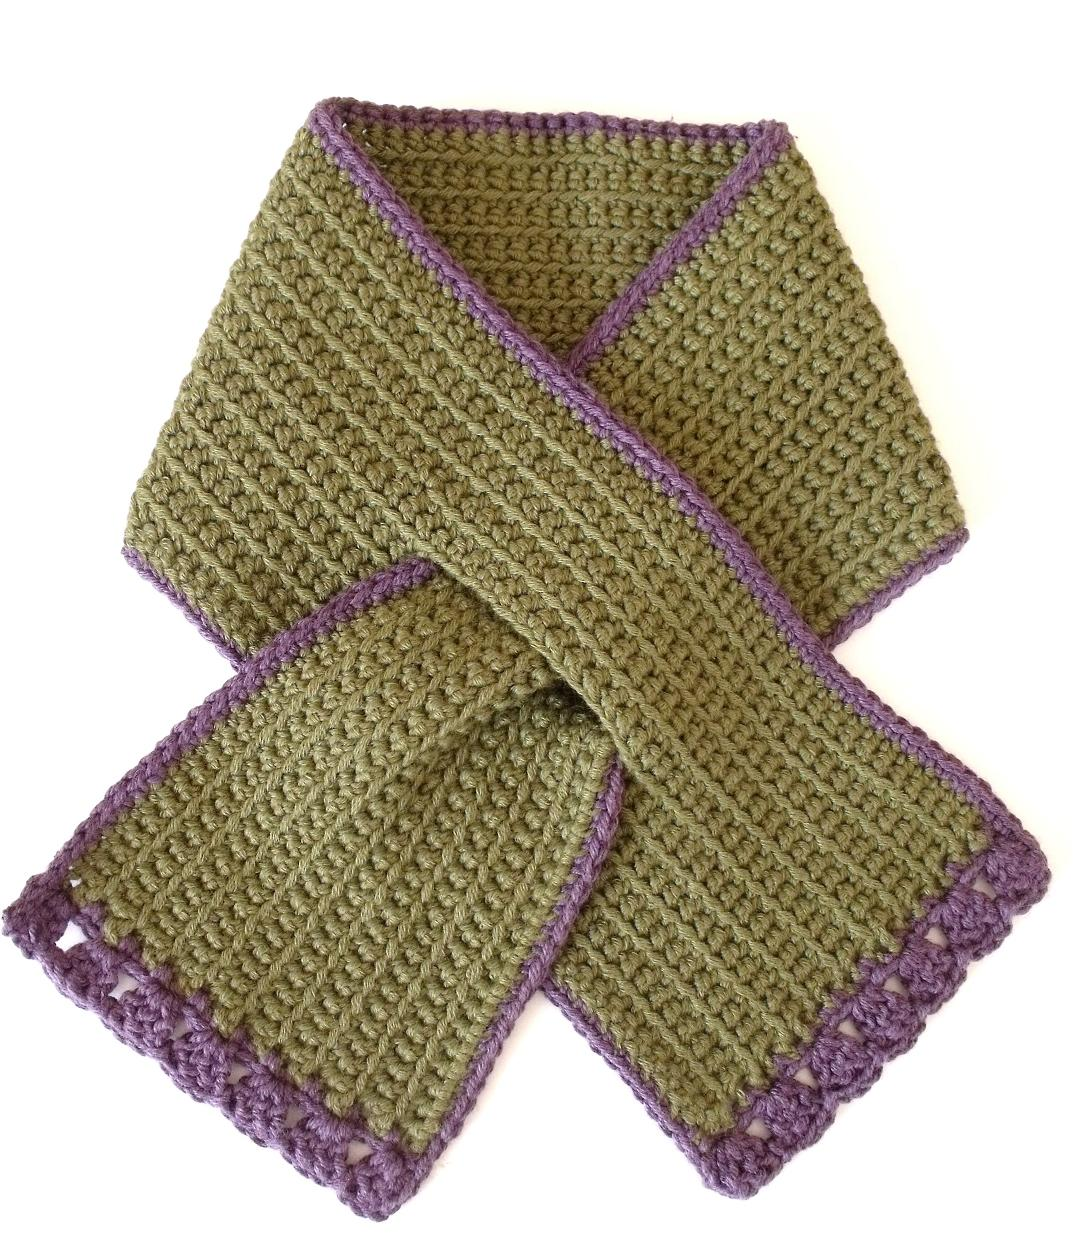 Knitted Keyhole Scarf Pattern : KEYHOLE CROCHET FREE PATTERN SCARF   CROCHET PATTERNS